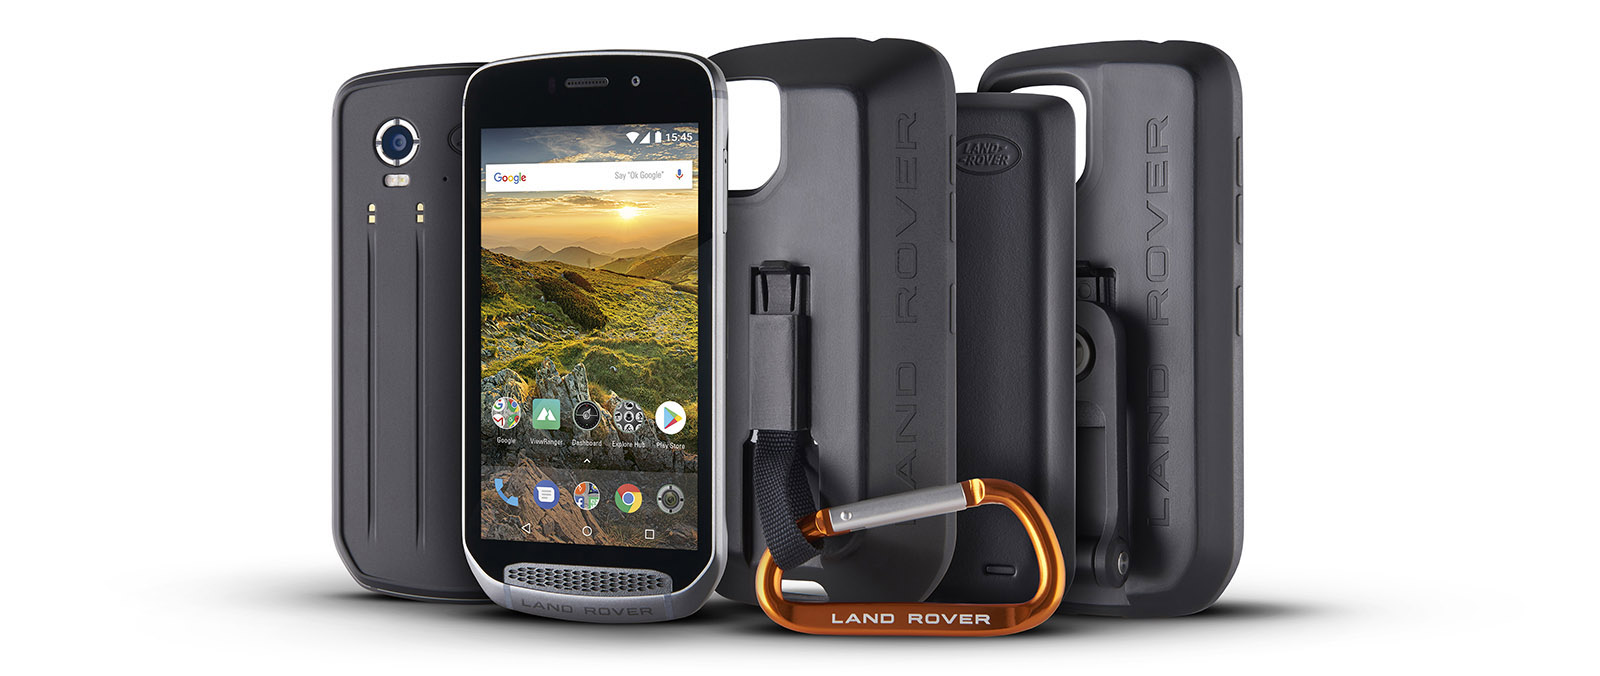 Land Rover Explore Android-smartphone